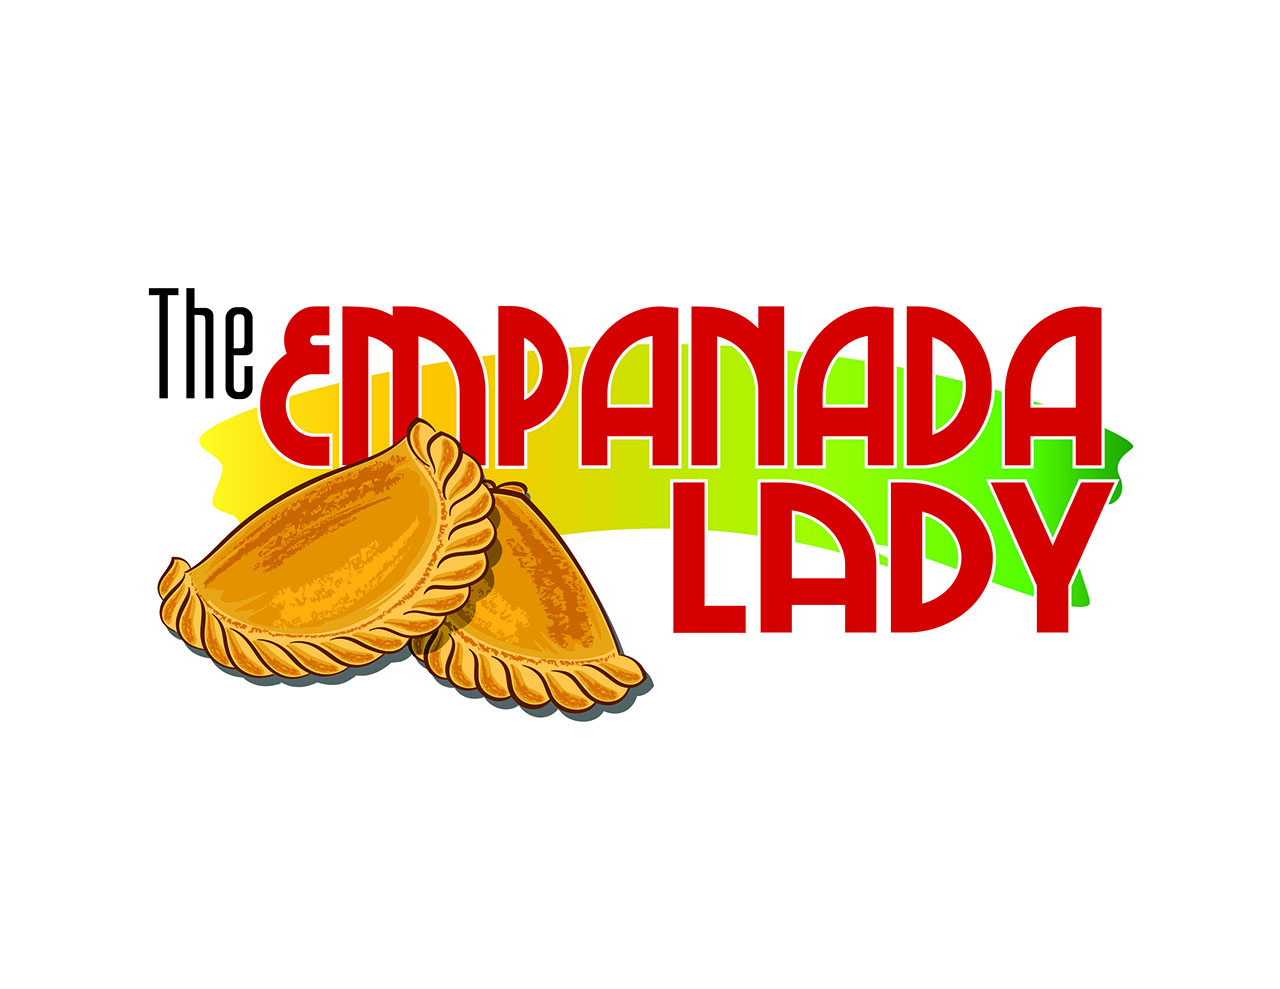 st-thomas-graphic-design-logo-empanada-lady